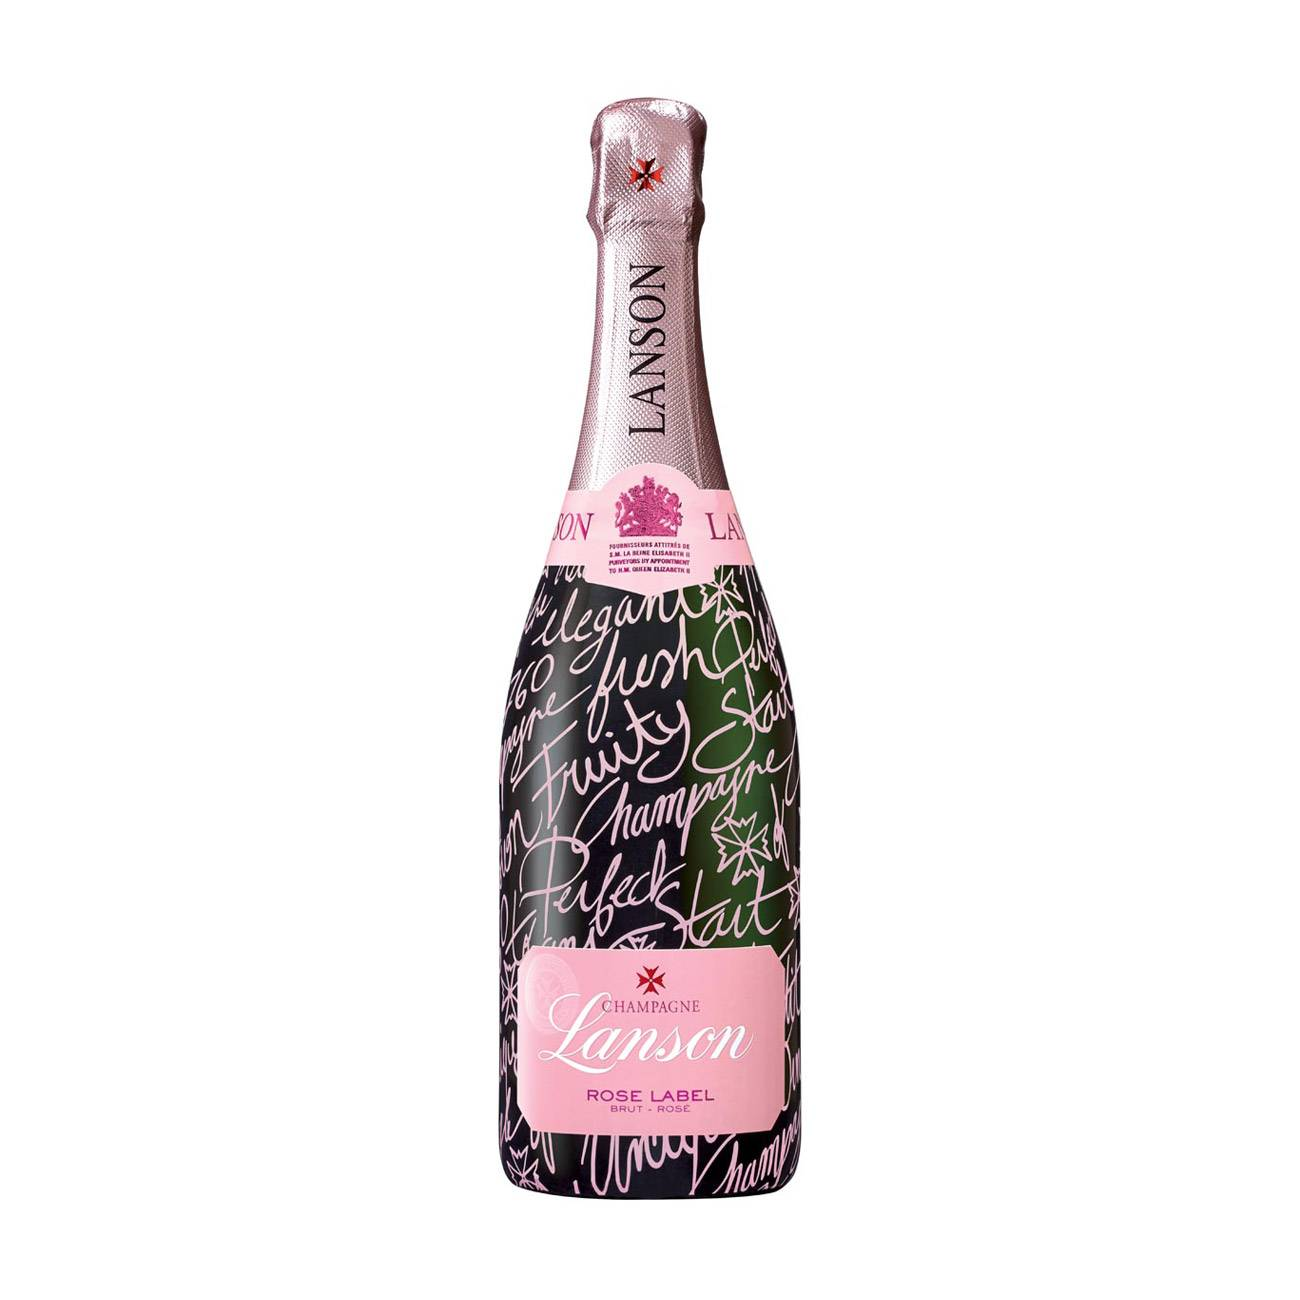 ROSE BRUT MESSAGE IN BOTTLE 750ml